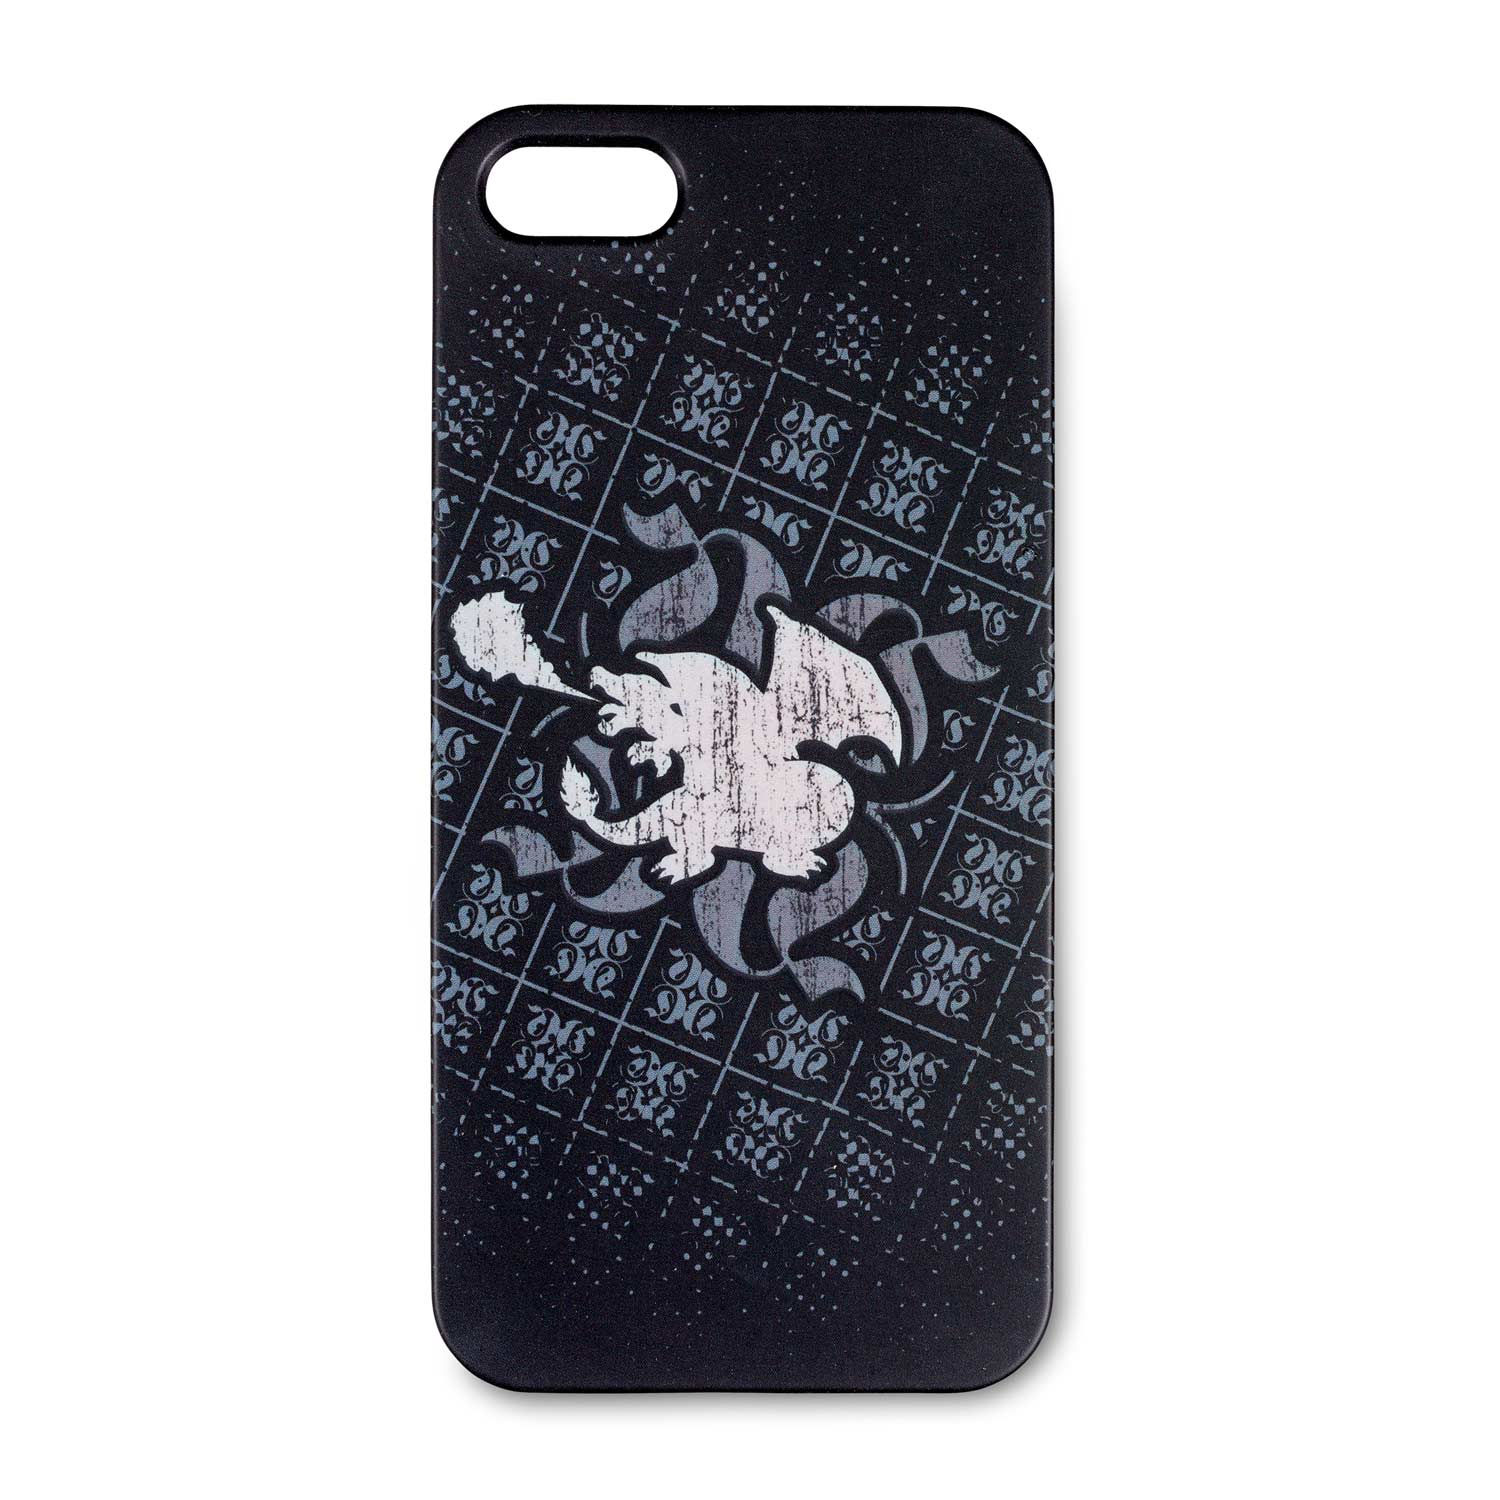 timeless design 237e2 037c2 Charizard Charcoal Phone Case (iPhone 5 and iPhone 5s)